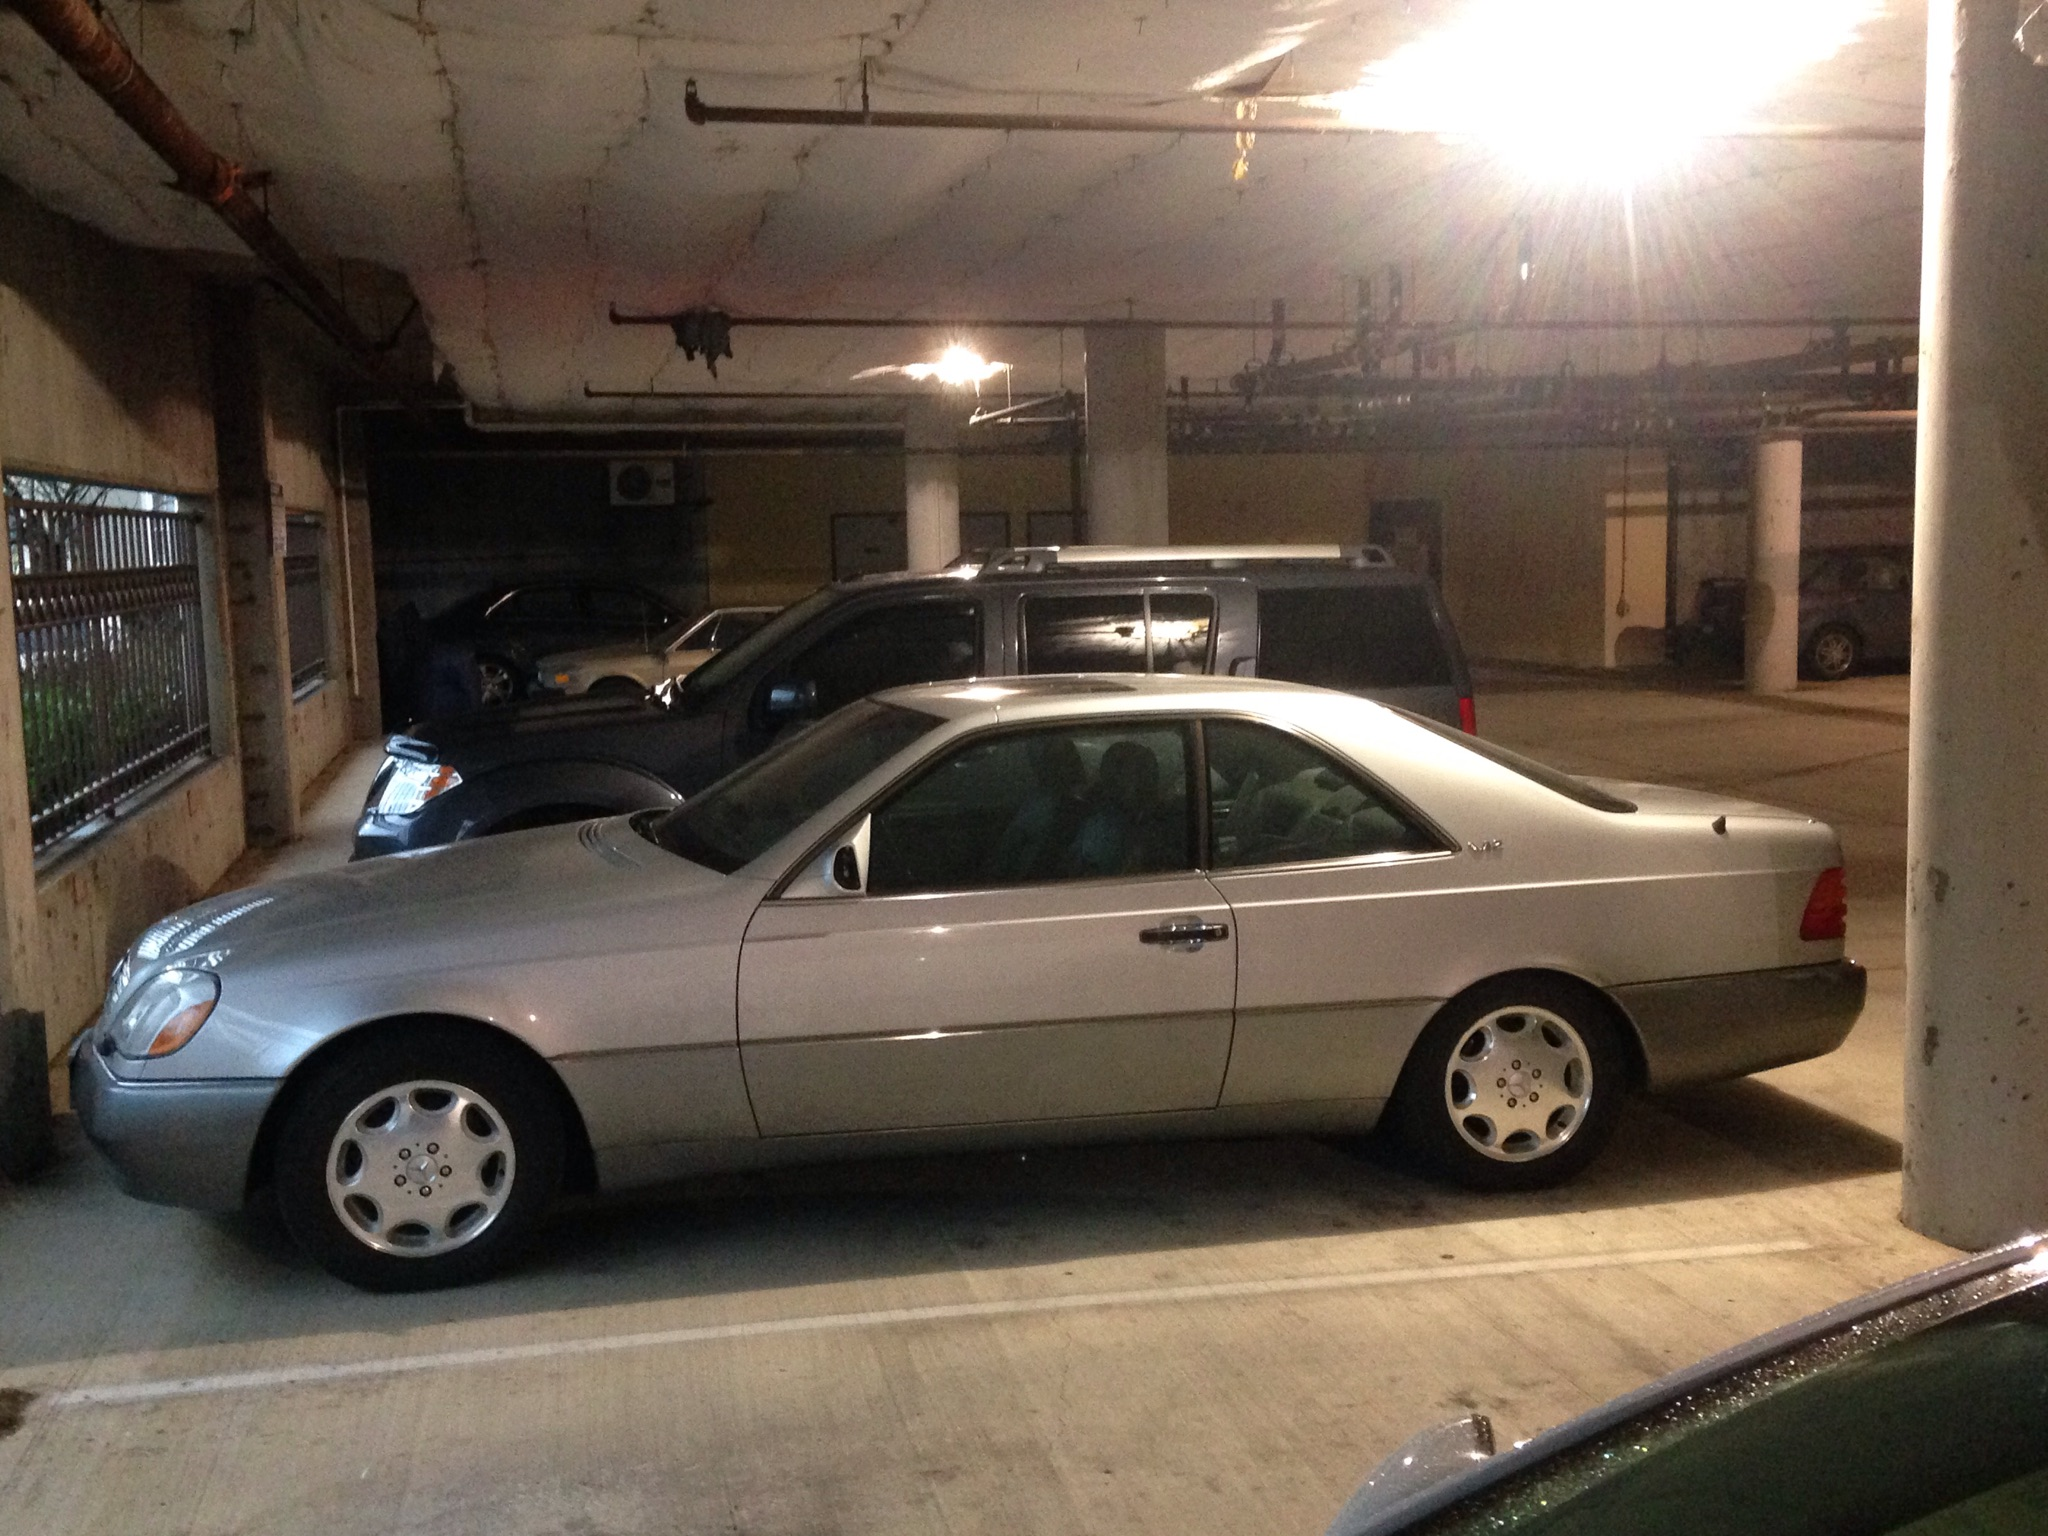 My New Cc 1996 Mercedes S600 V12 Coupe W140 Massive 2001 Cl600 Fuse Diagram I Mean Everything Even The Original Cell Phone What An Amazing Car Very Easy To Work On Ample Room Fwi Do Not Be Afraid Of V 12